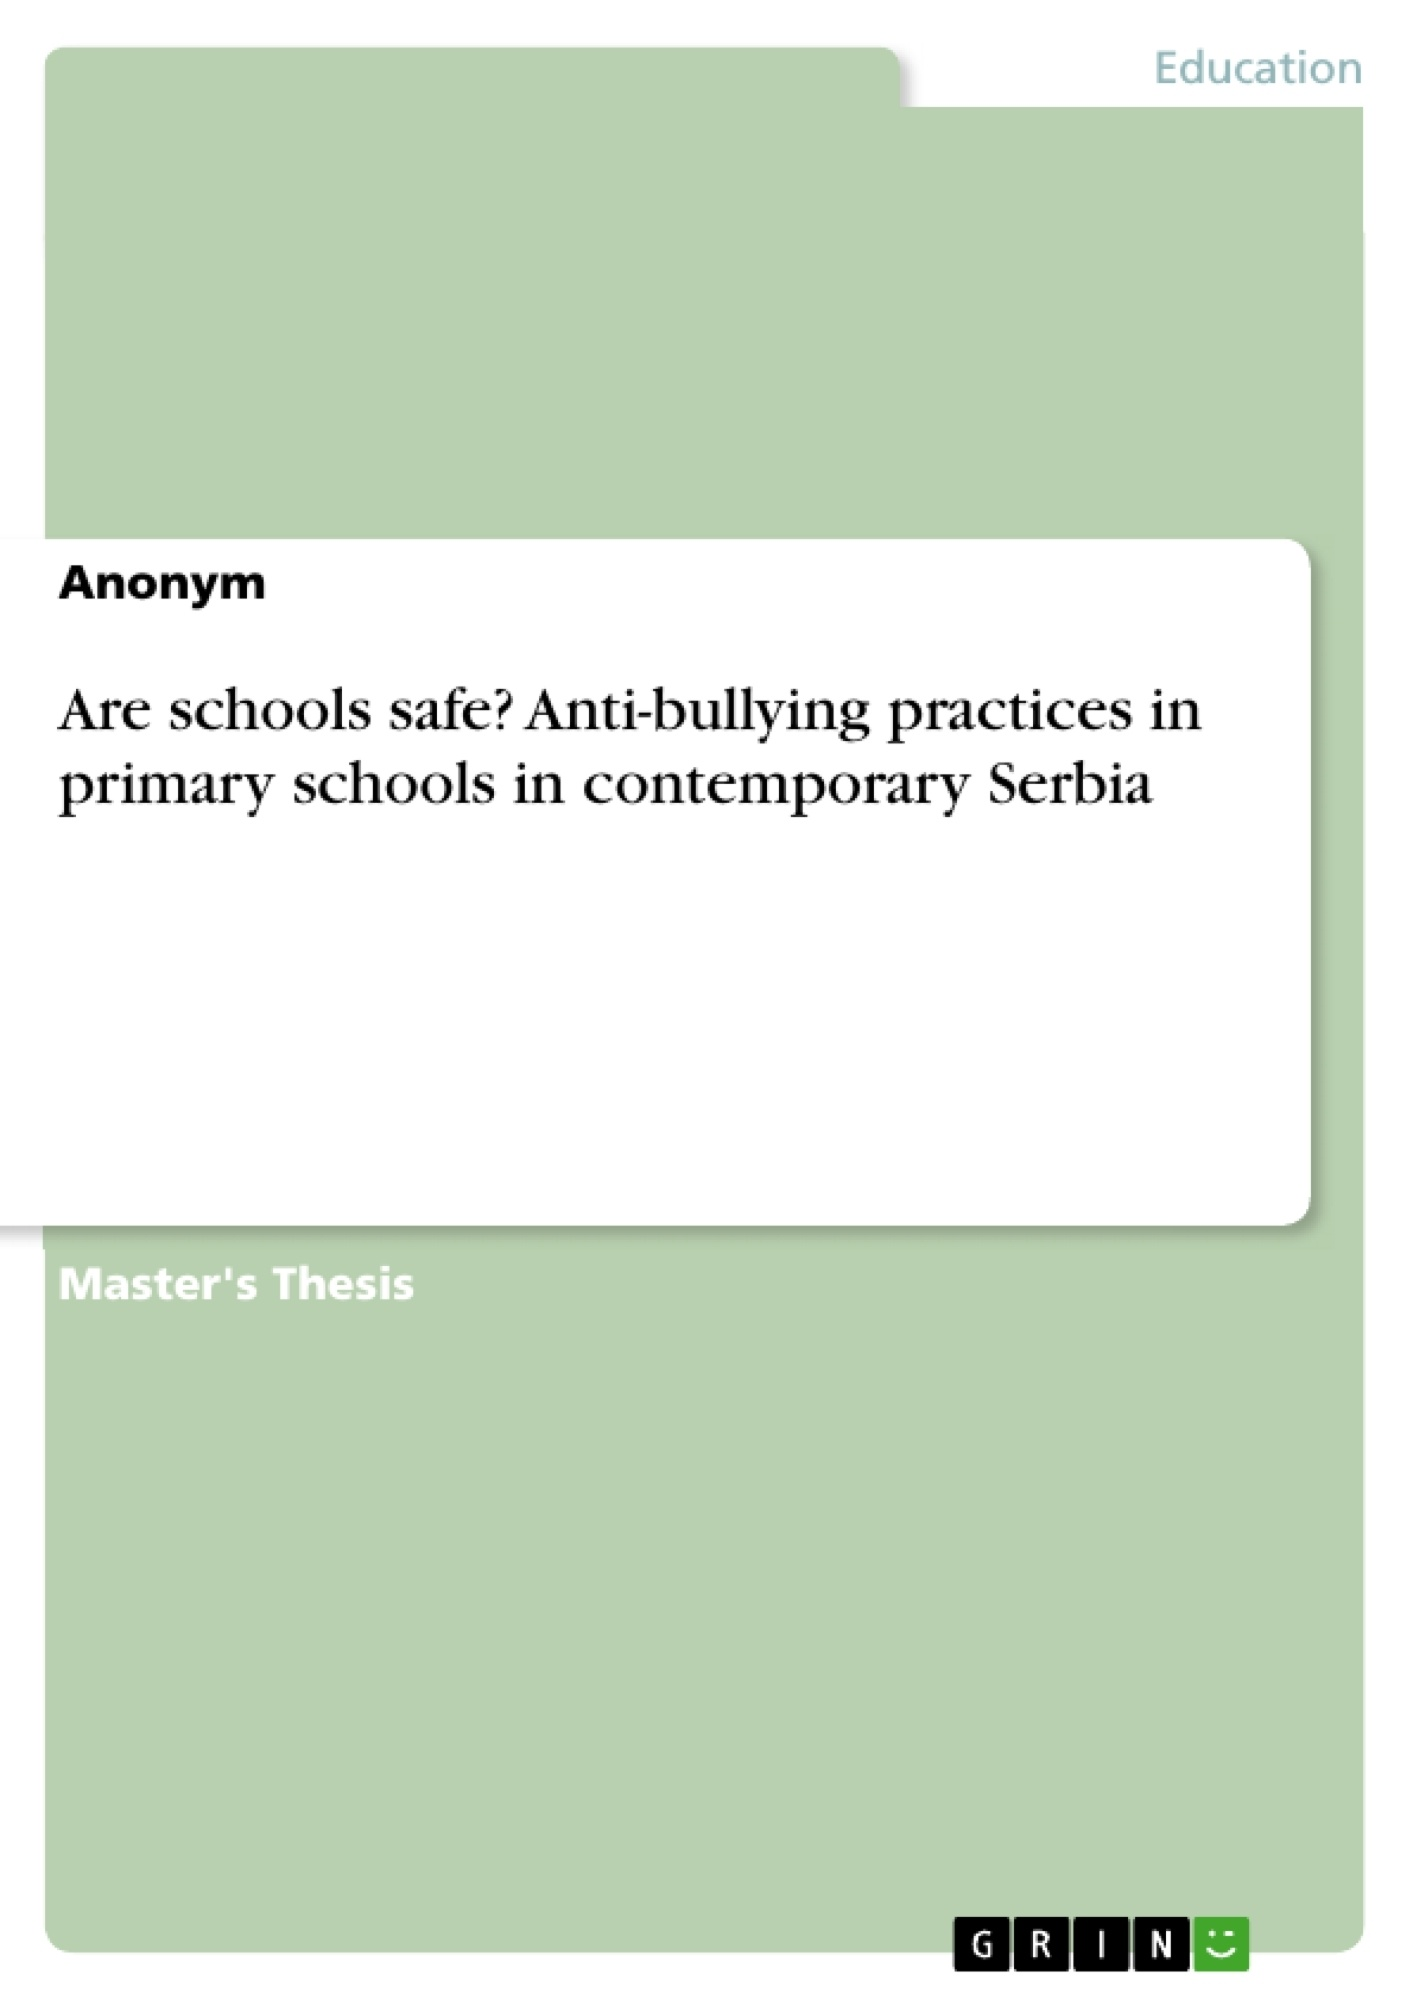 Title: Are schools safe? Anti-bullying practices in primary schools in contemporary Serbia